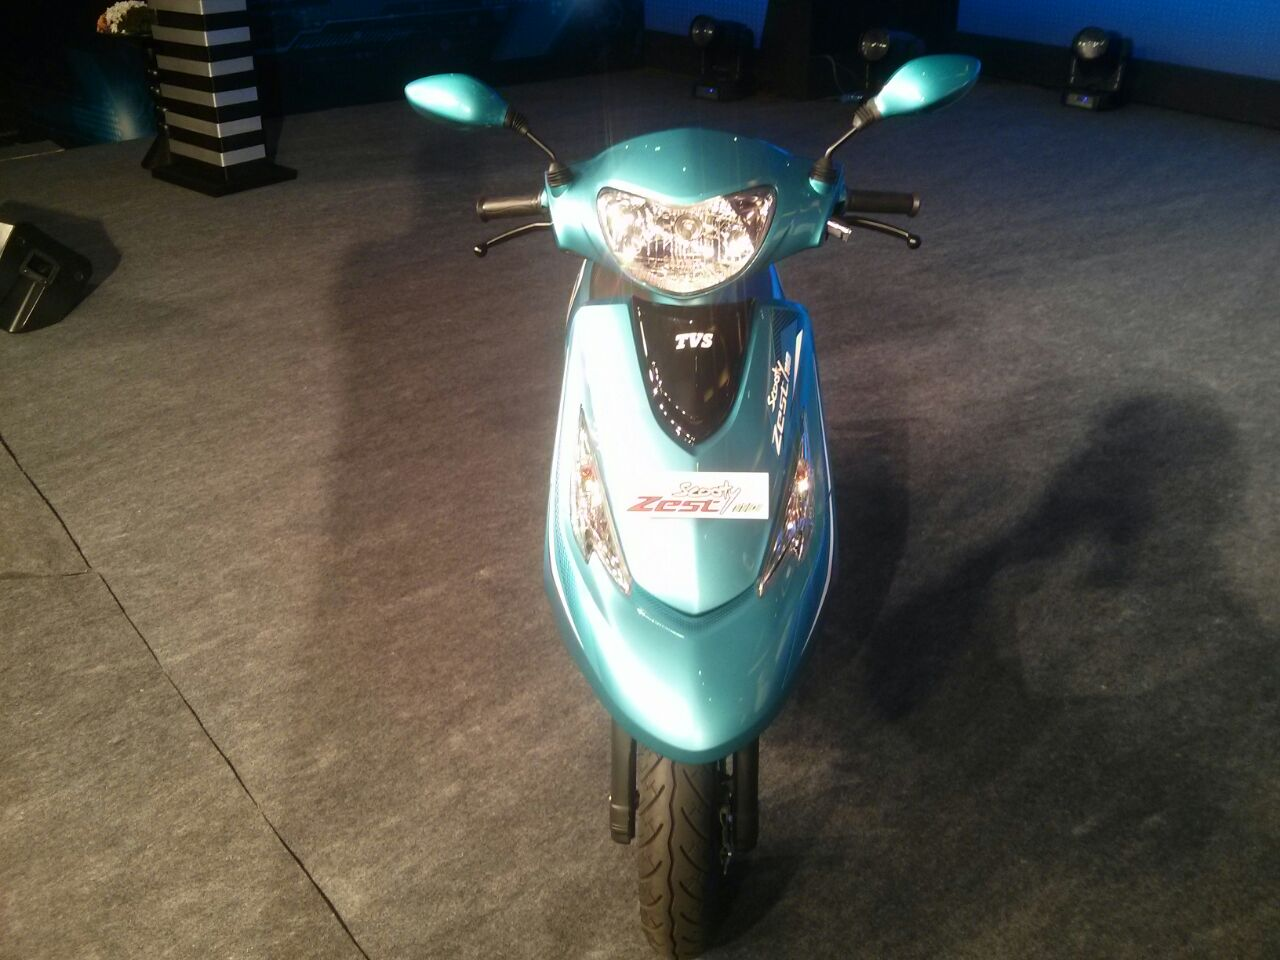 Scooty Zest front